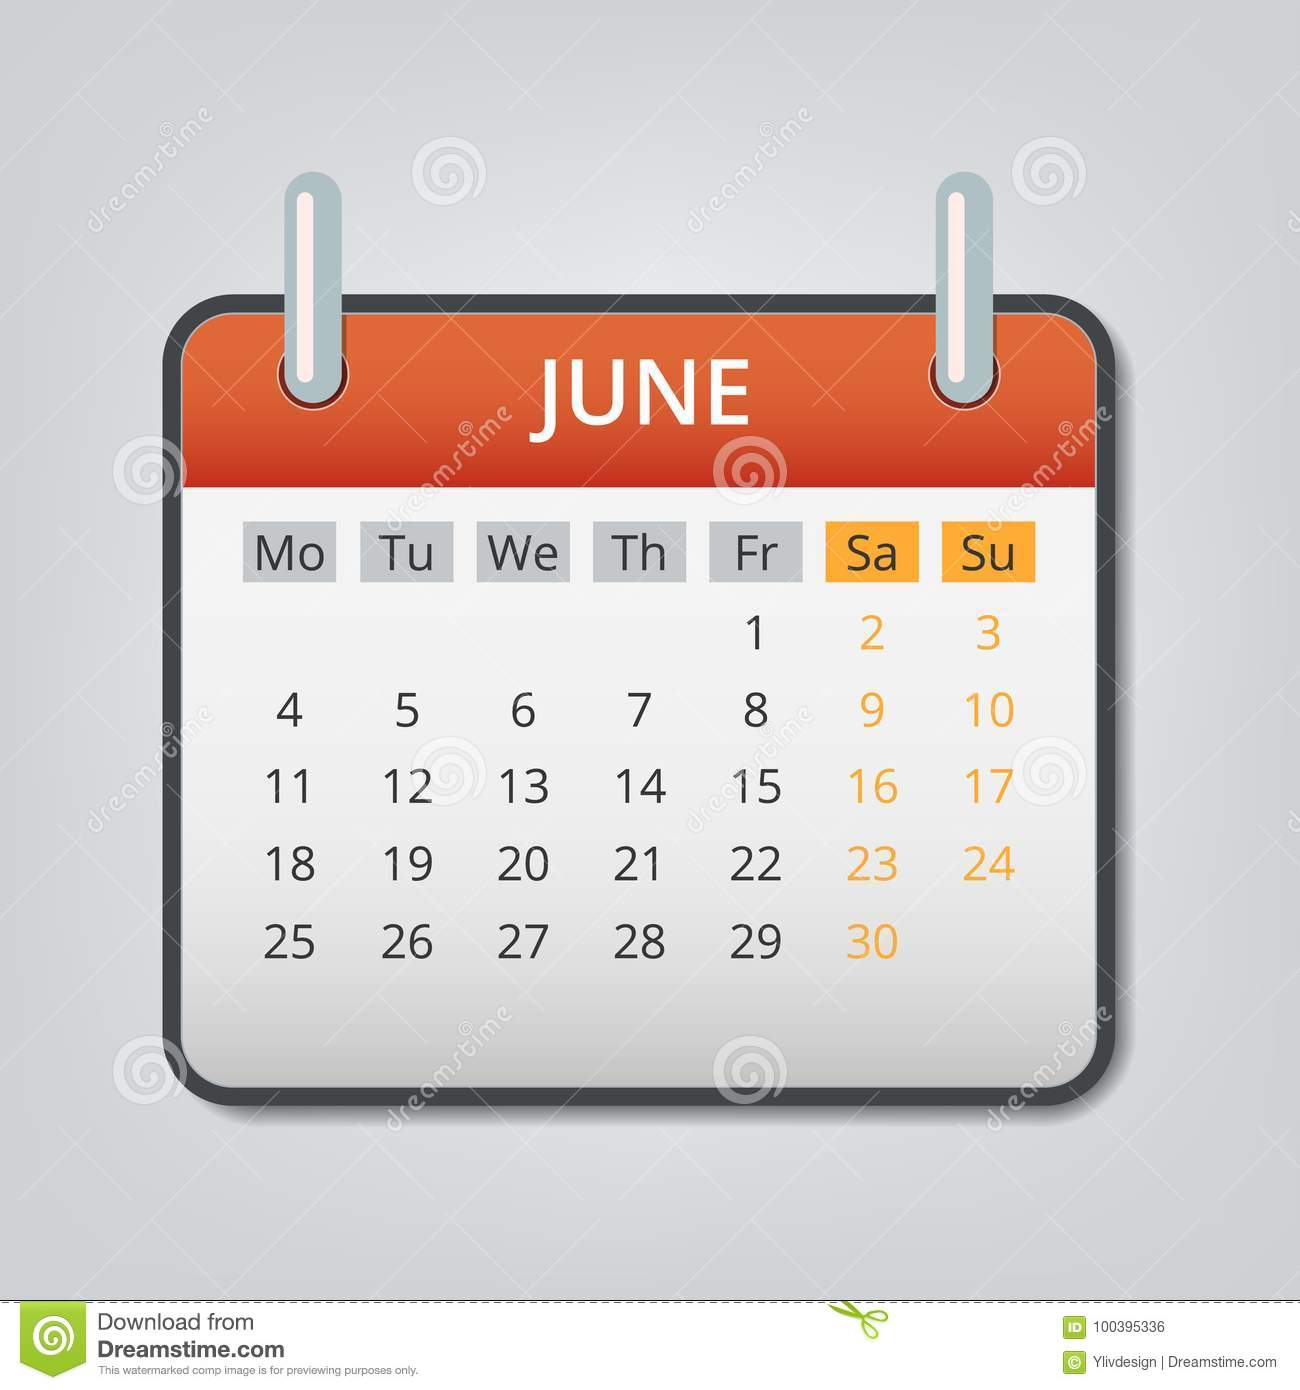 royalty free vector june 2018 calendar concept background cartoon style